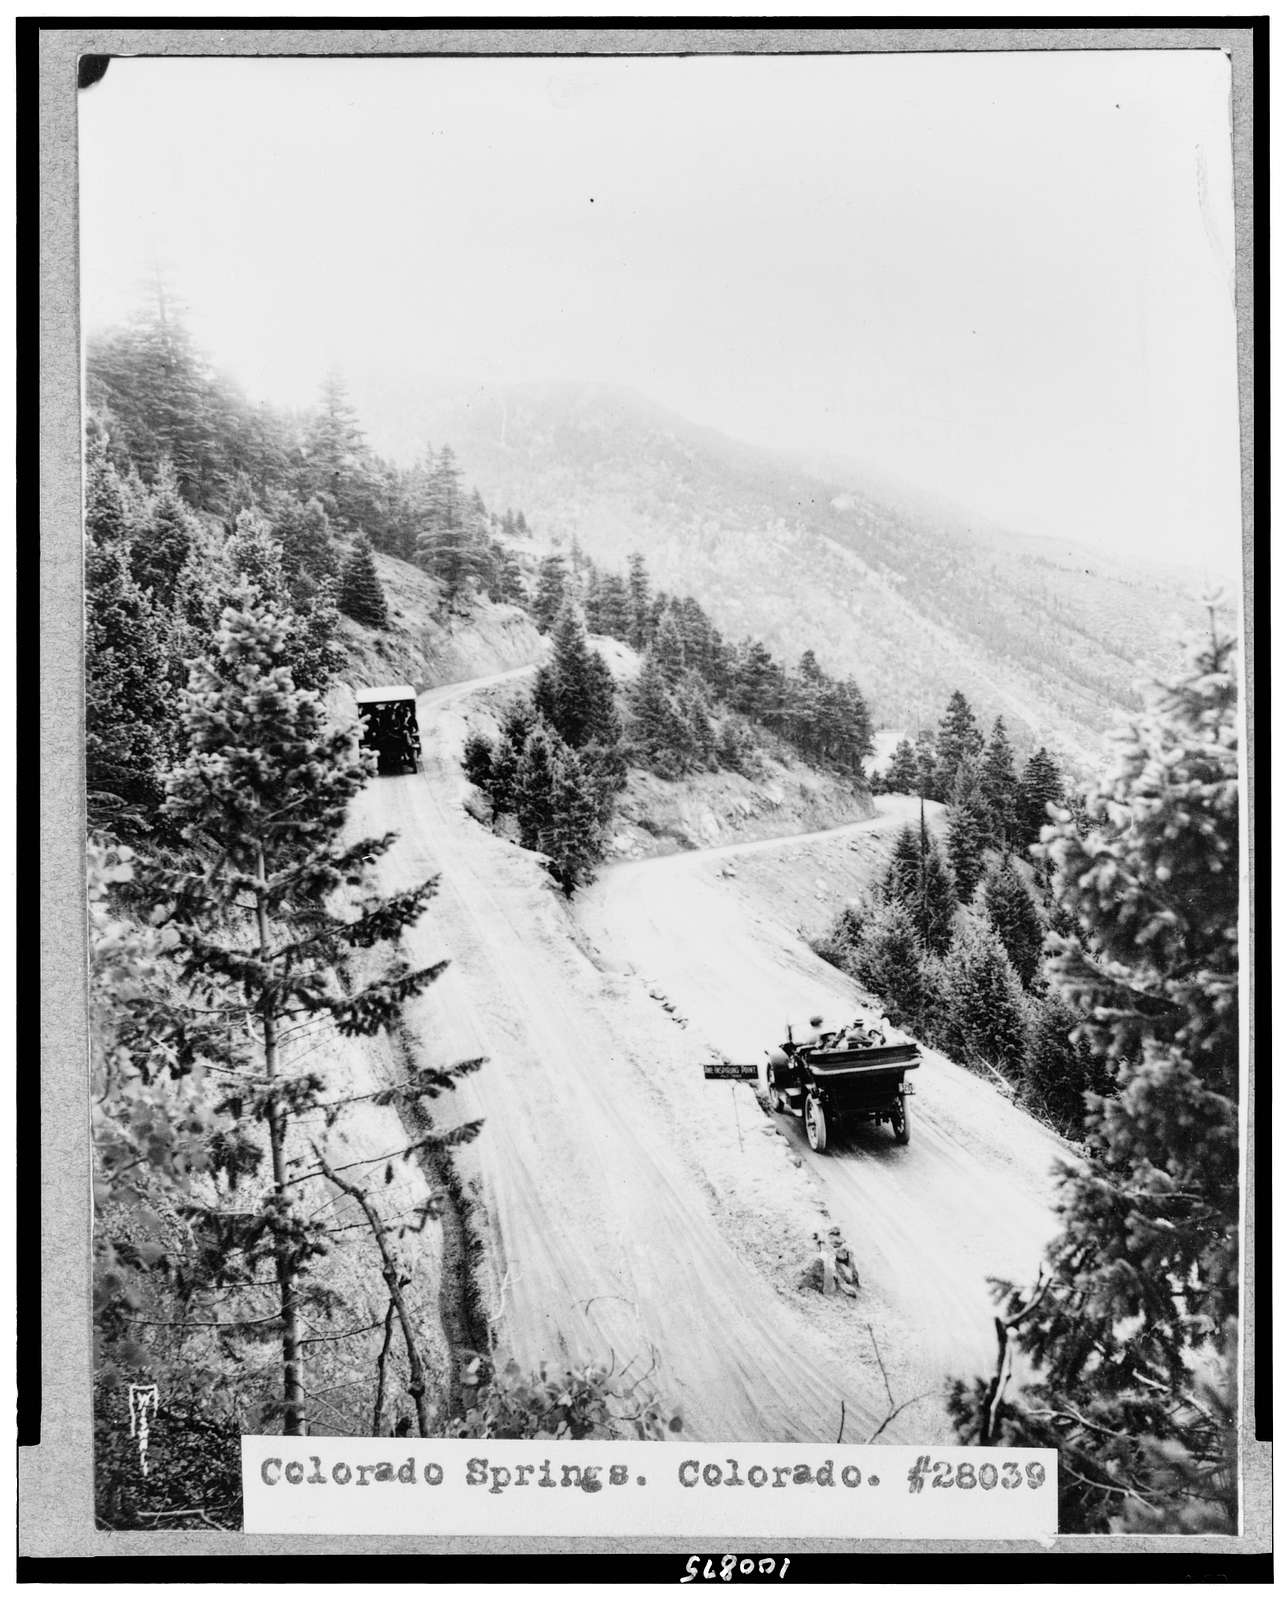 [Colorado Springs, Colorado. Two automobiles going down mountain road, with horseshoe turn in foreground] / Wiswall(?).